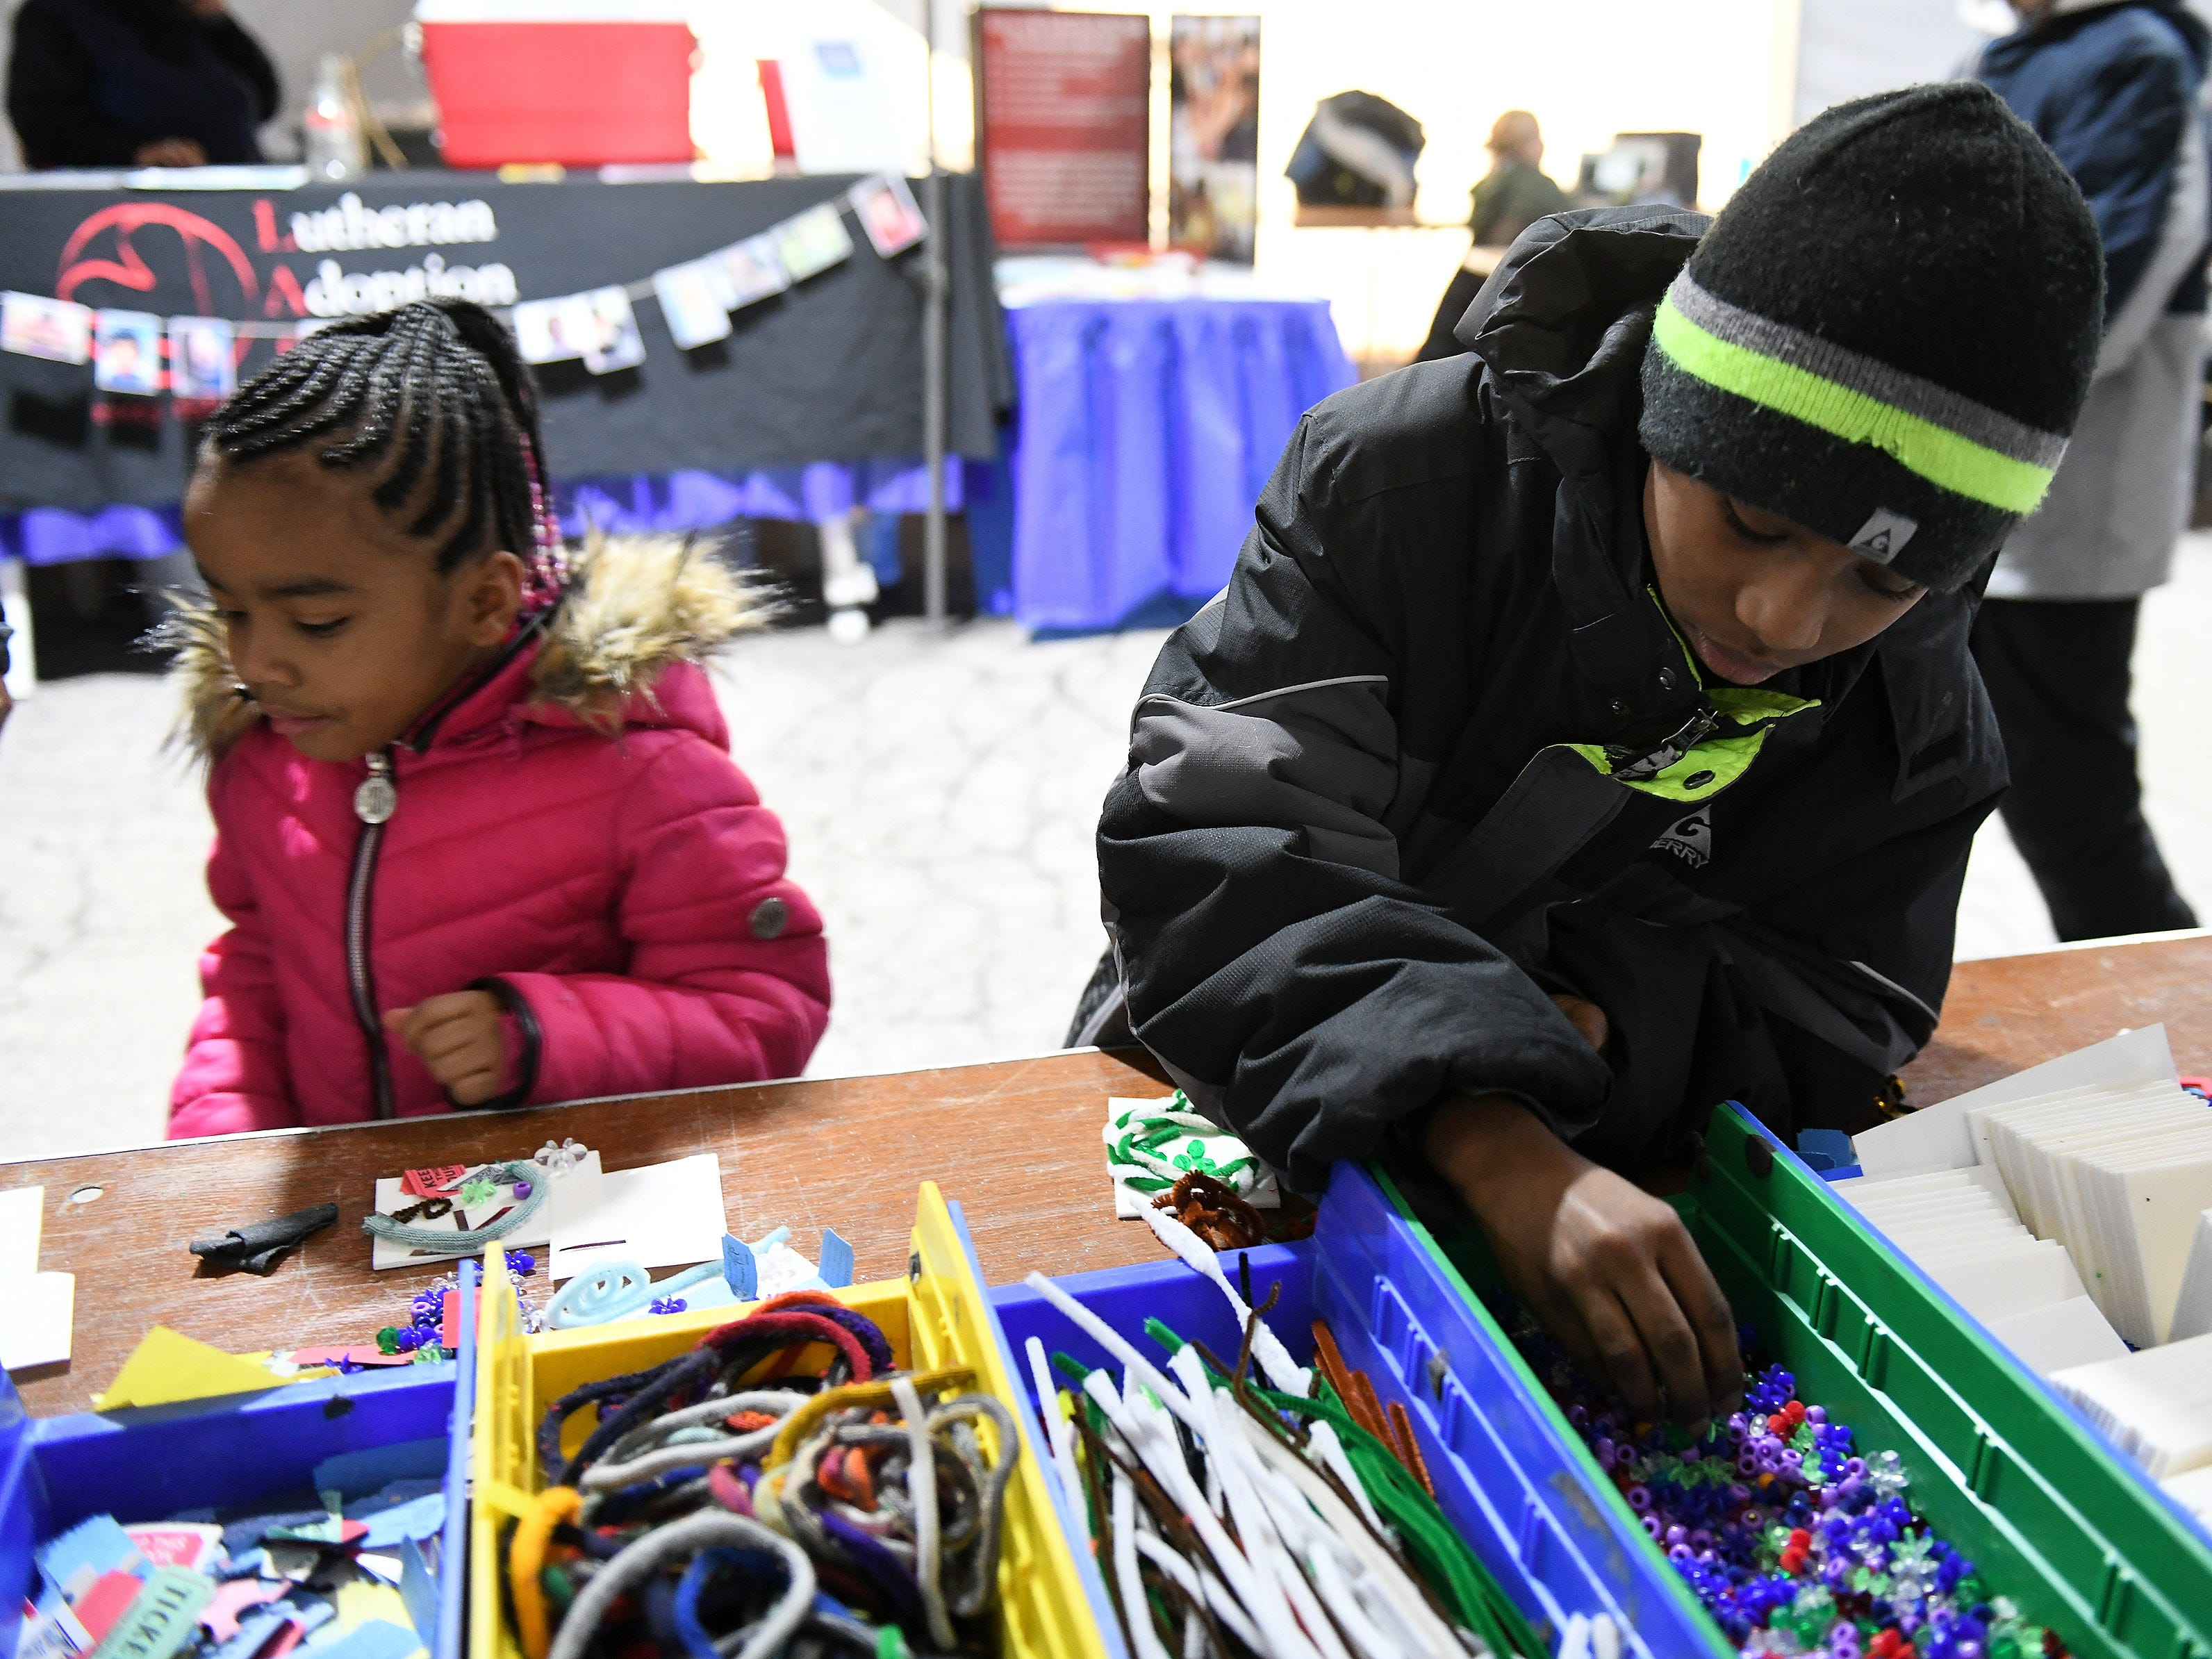 Ardise Williams, 9, right, and his sister, Tae'on Clay, 5, both of Detroit make art projects at the Arts and Scraps table in the Bedrock Comfort Zone.